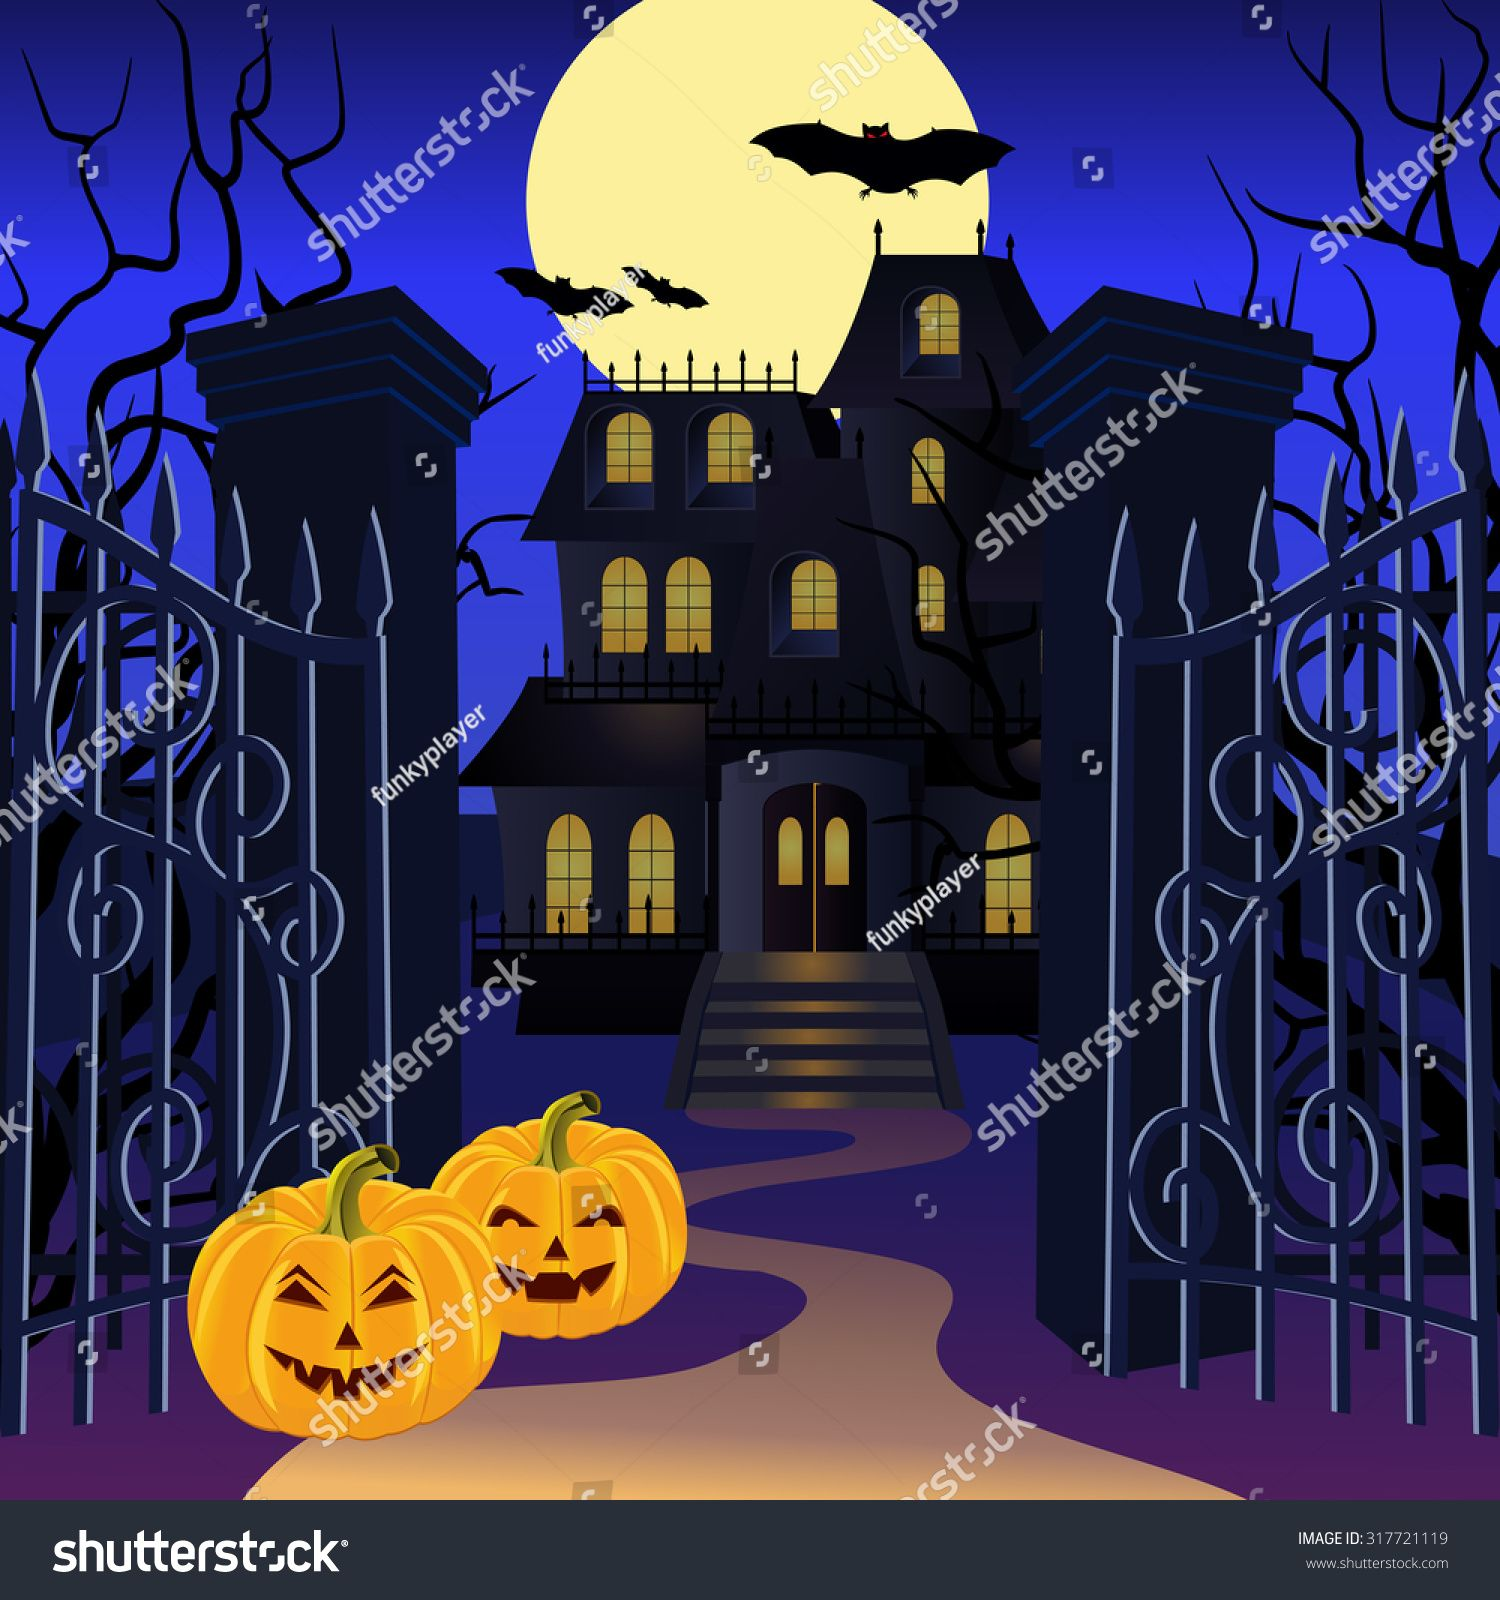 Pin by Jennifer Anderson on Spooky Halloween backgrounds